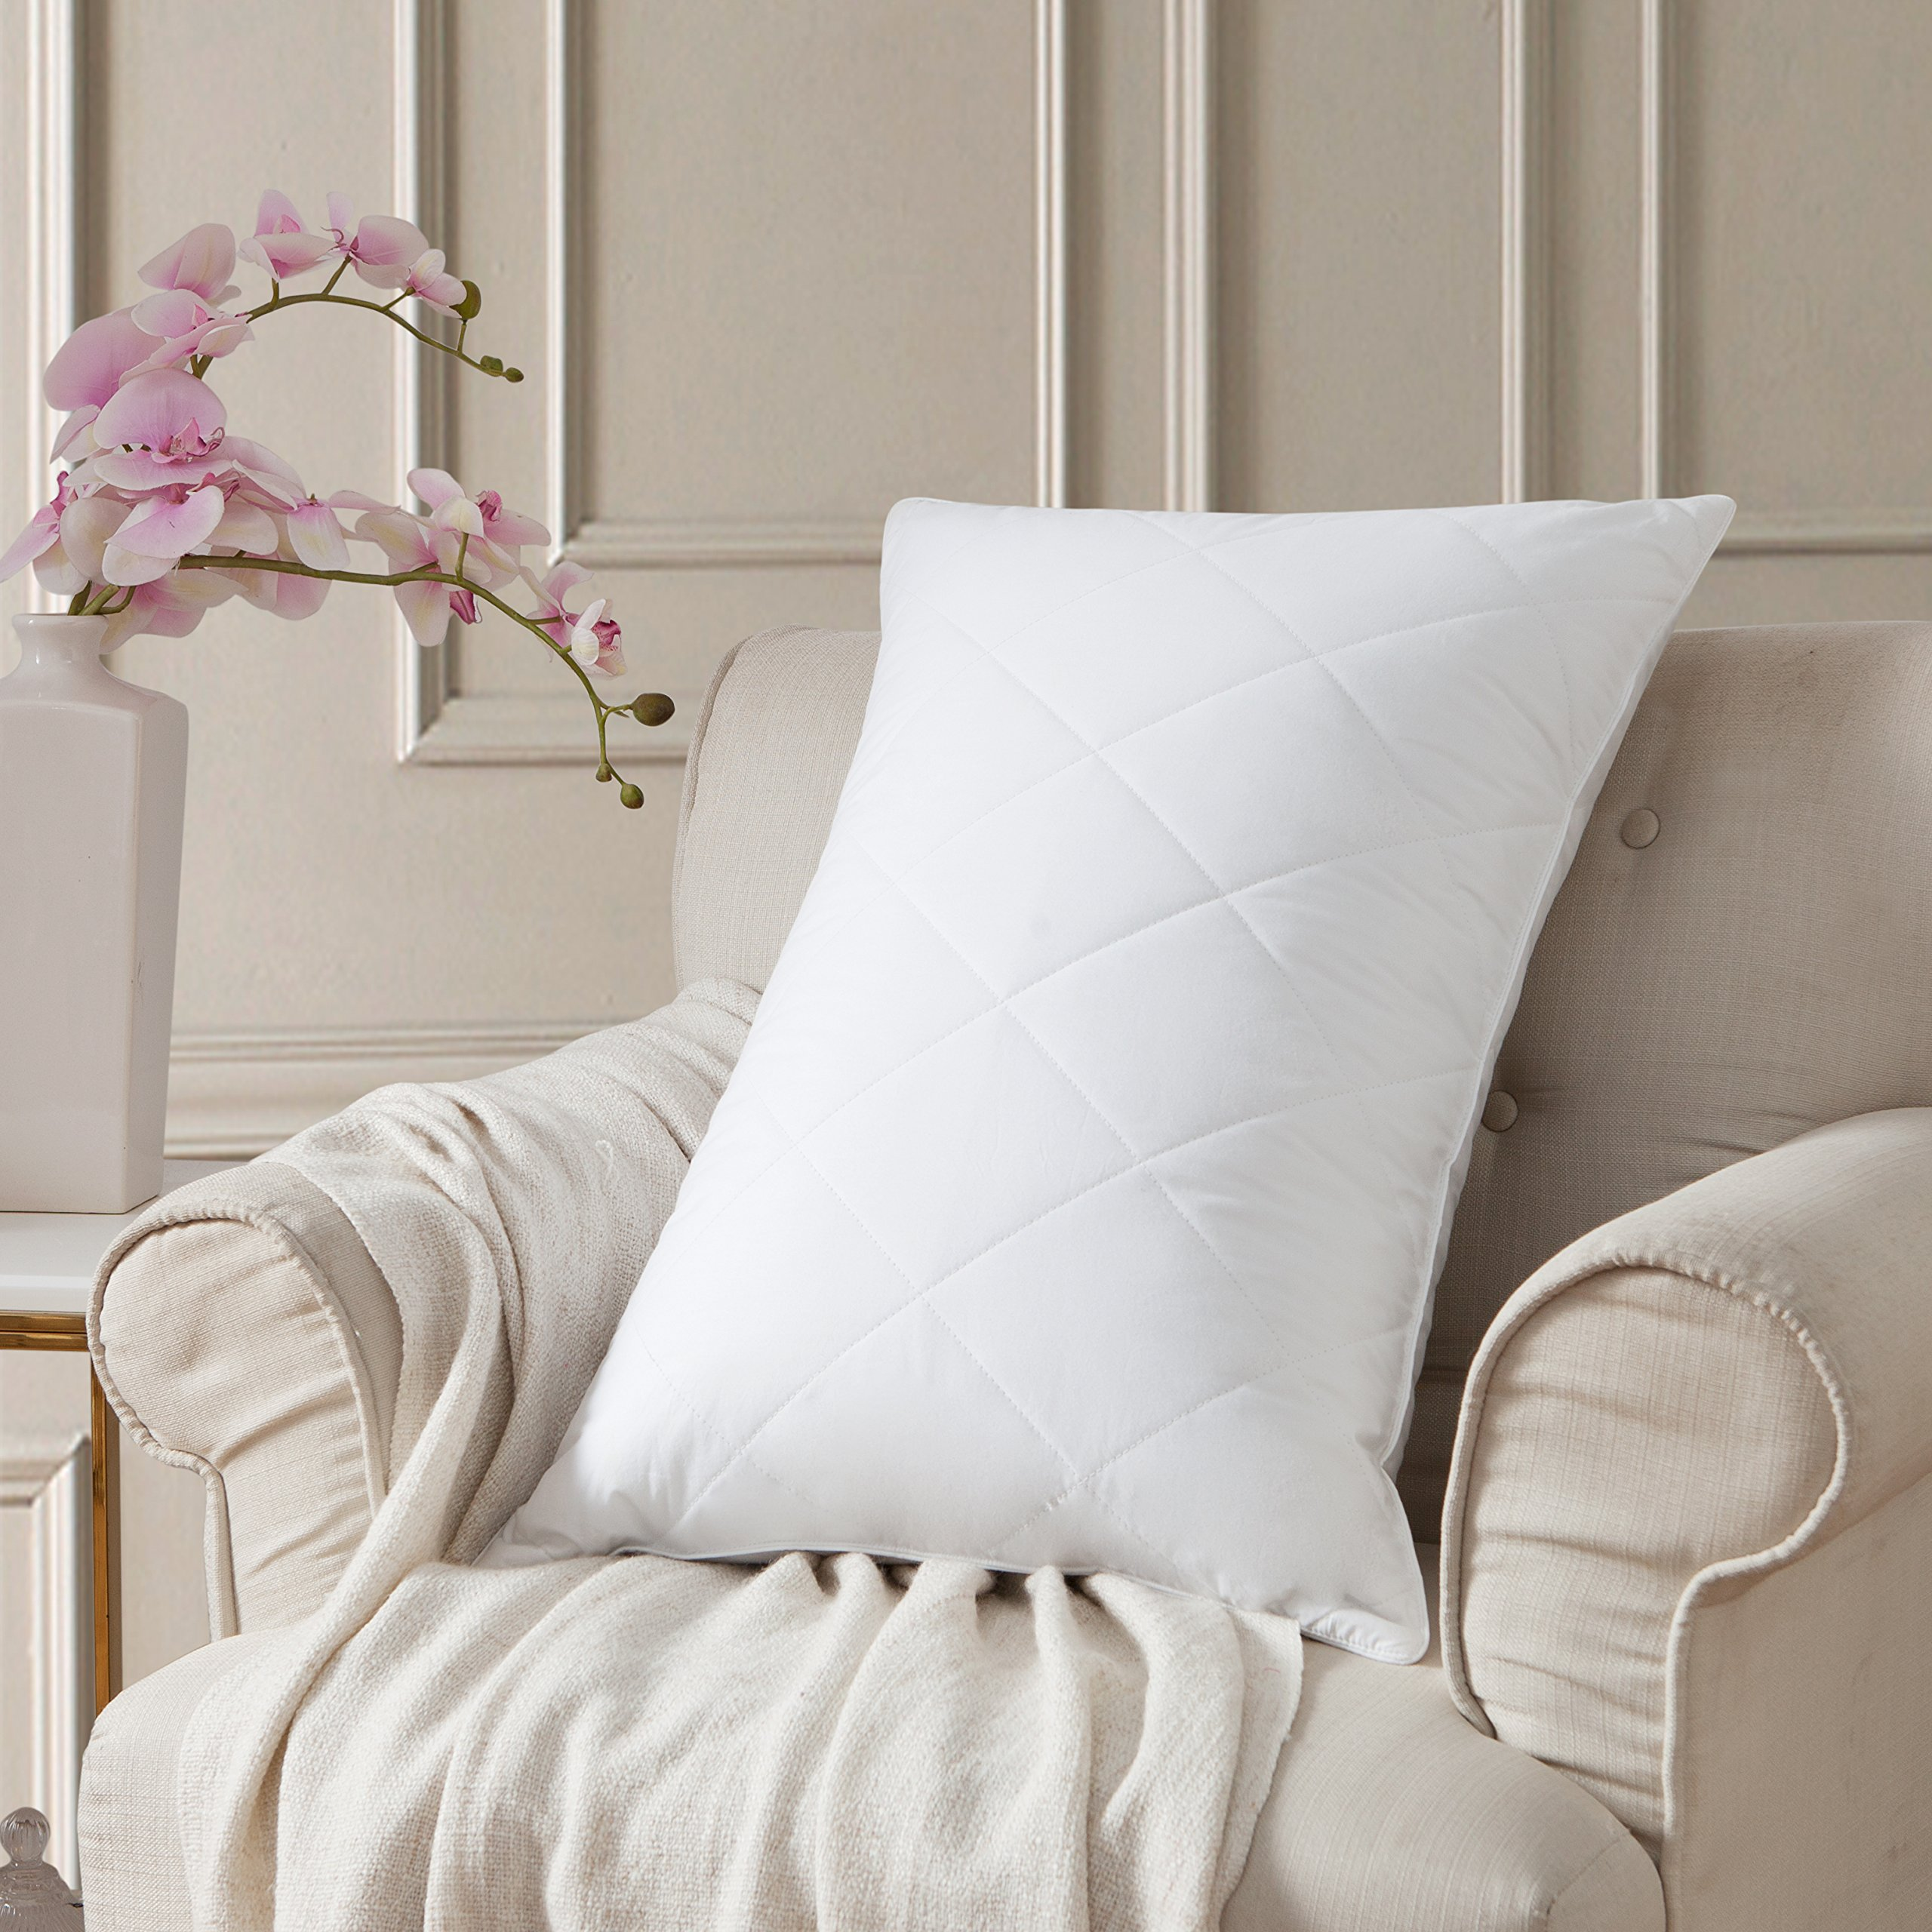 bath shipping today cfef down of bedding overstock osleep goose white free pillows product and pillow feather set